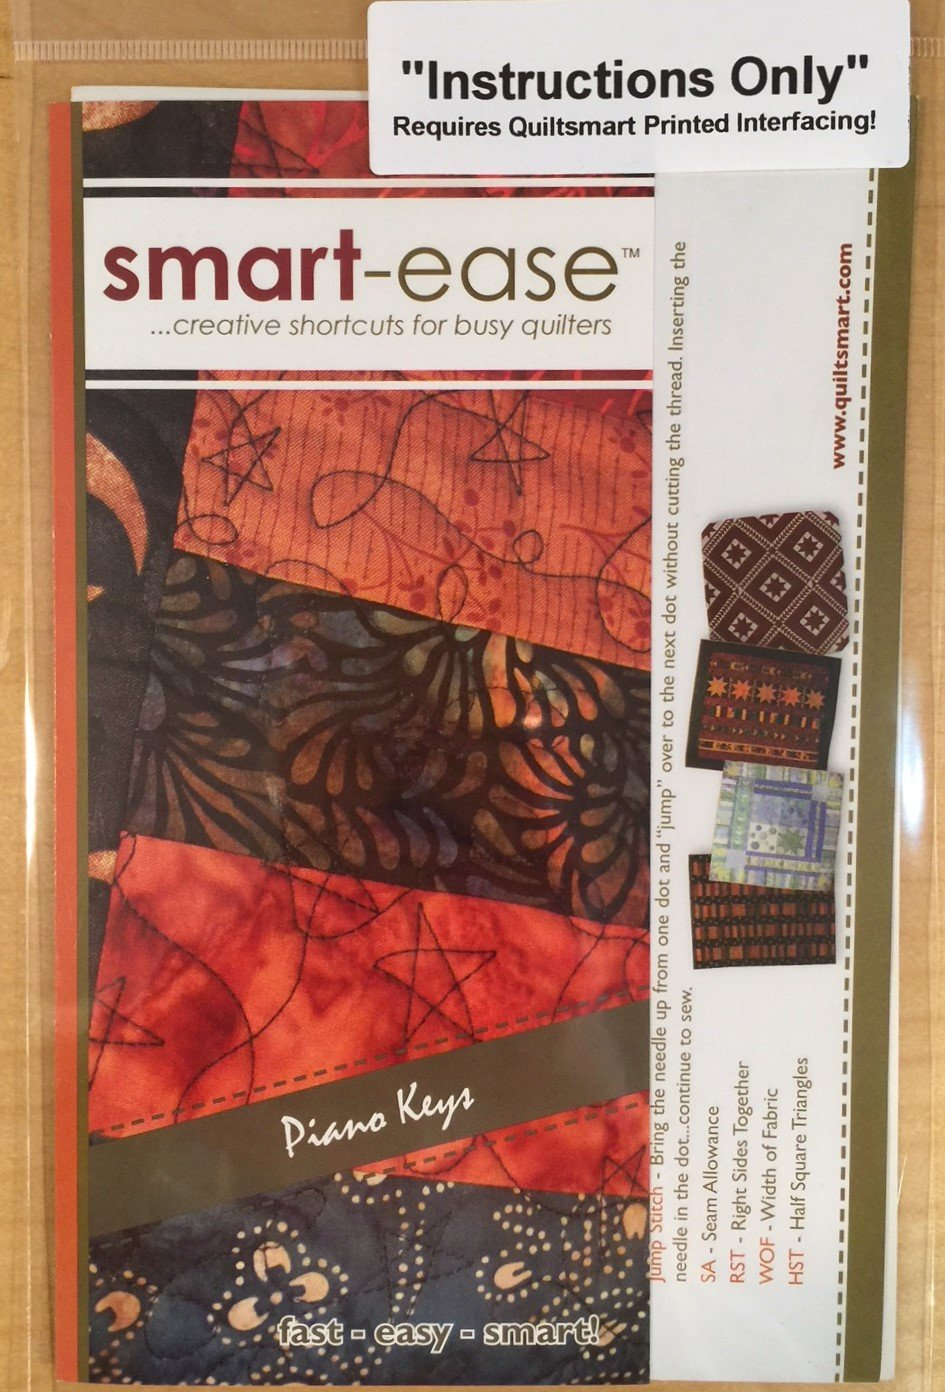 smart-ease Piano Keys - Instructions Only